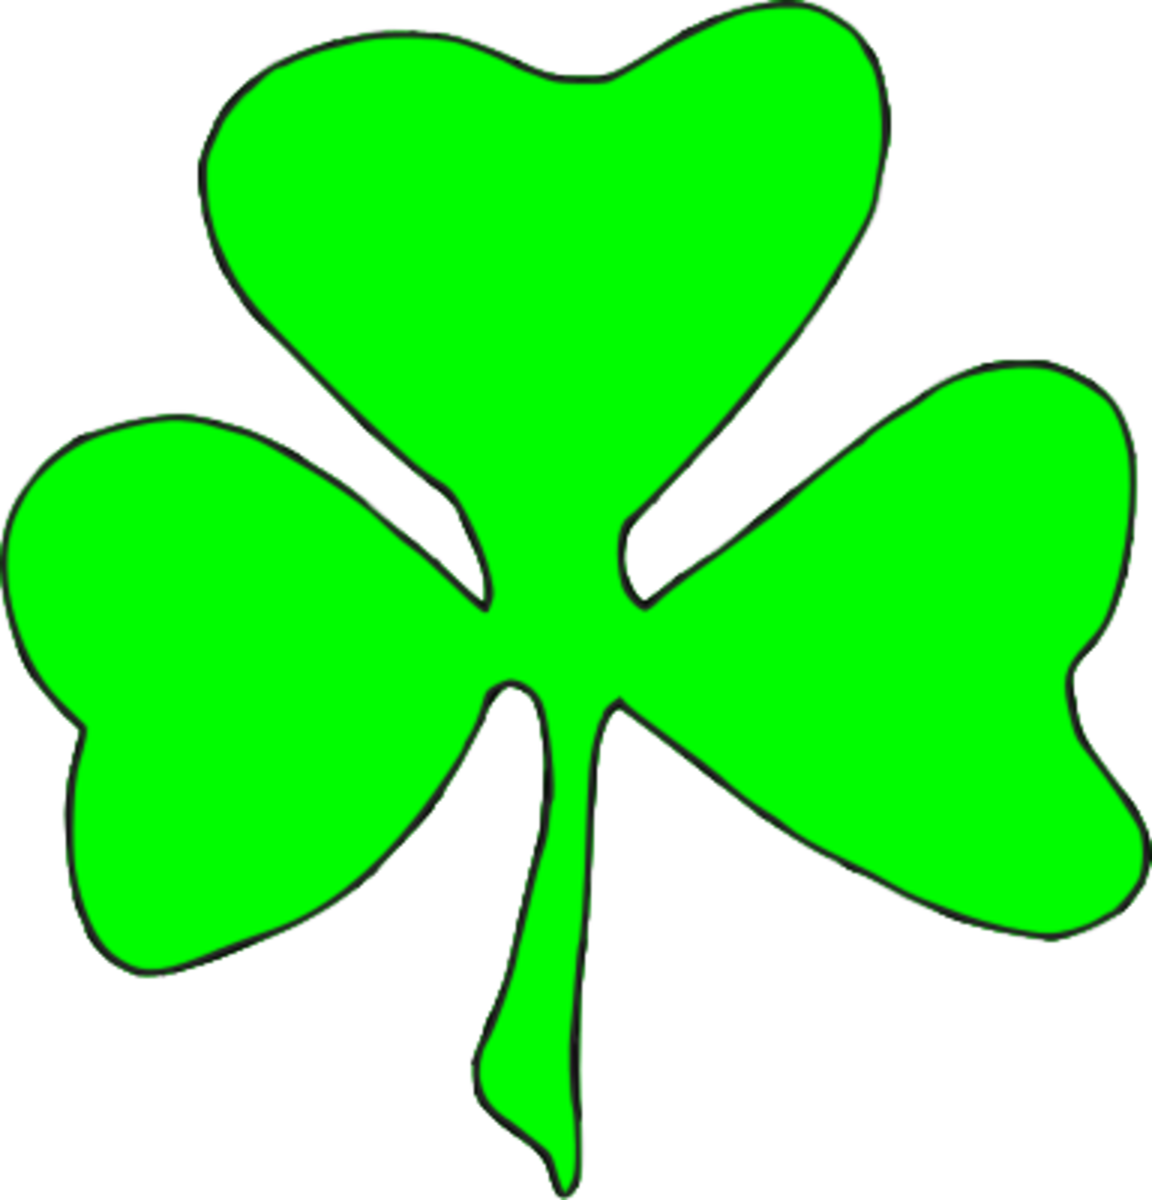 Shamrock Illustration